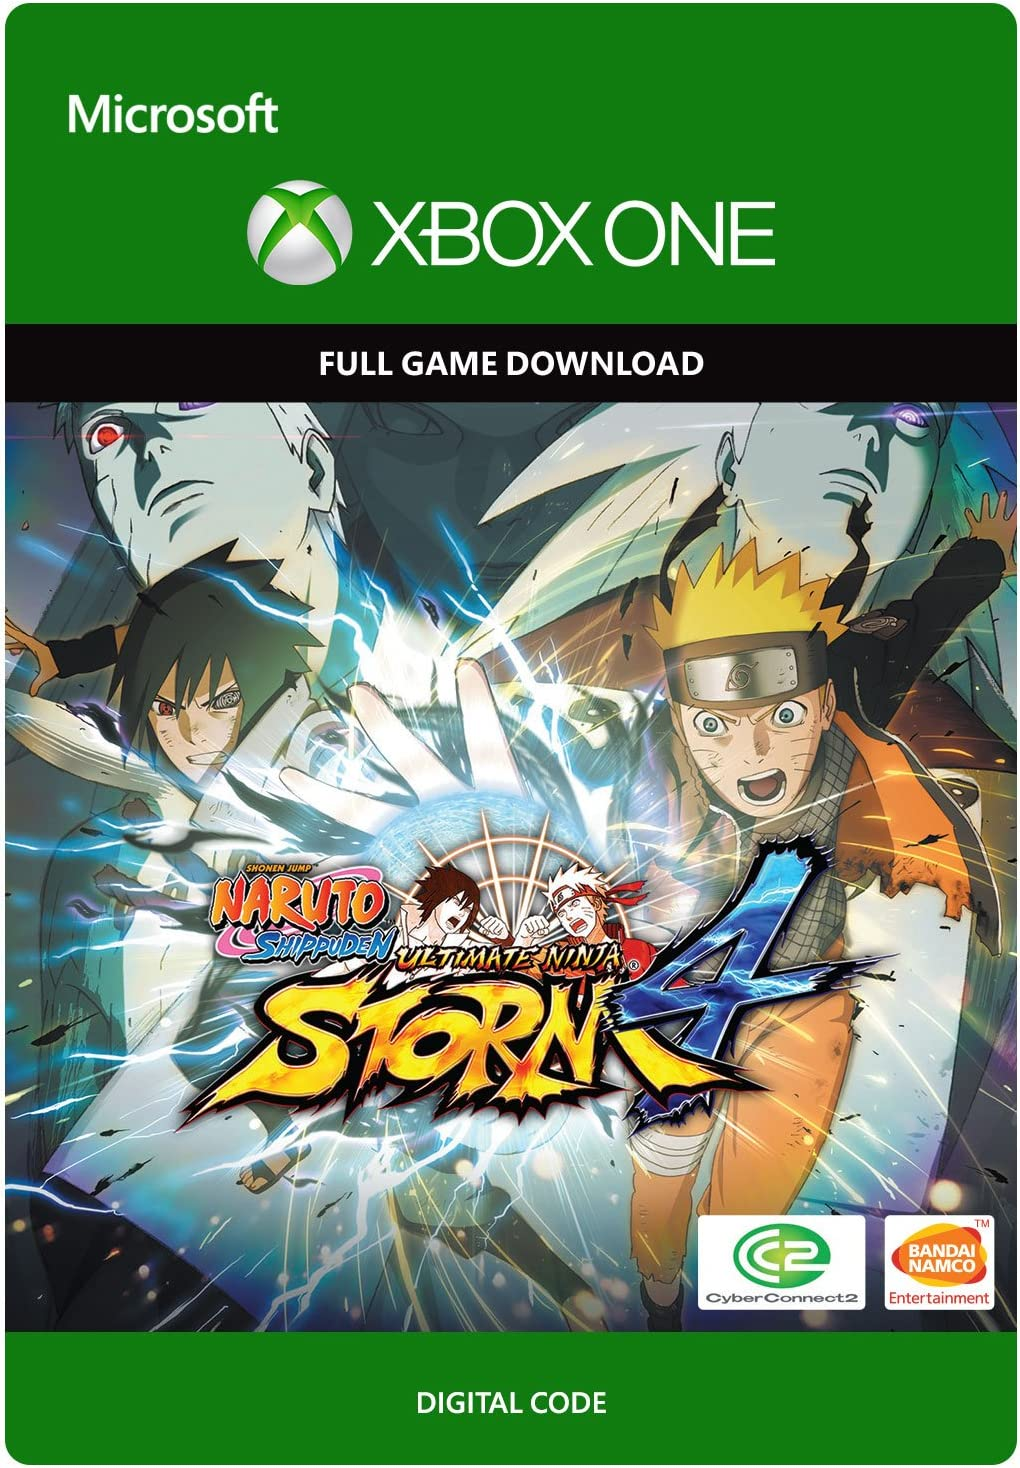 Amazon.com: Naruto Ultimate Ninja Storm 4 - Xbox One Digital ...